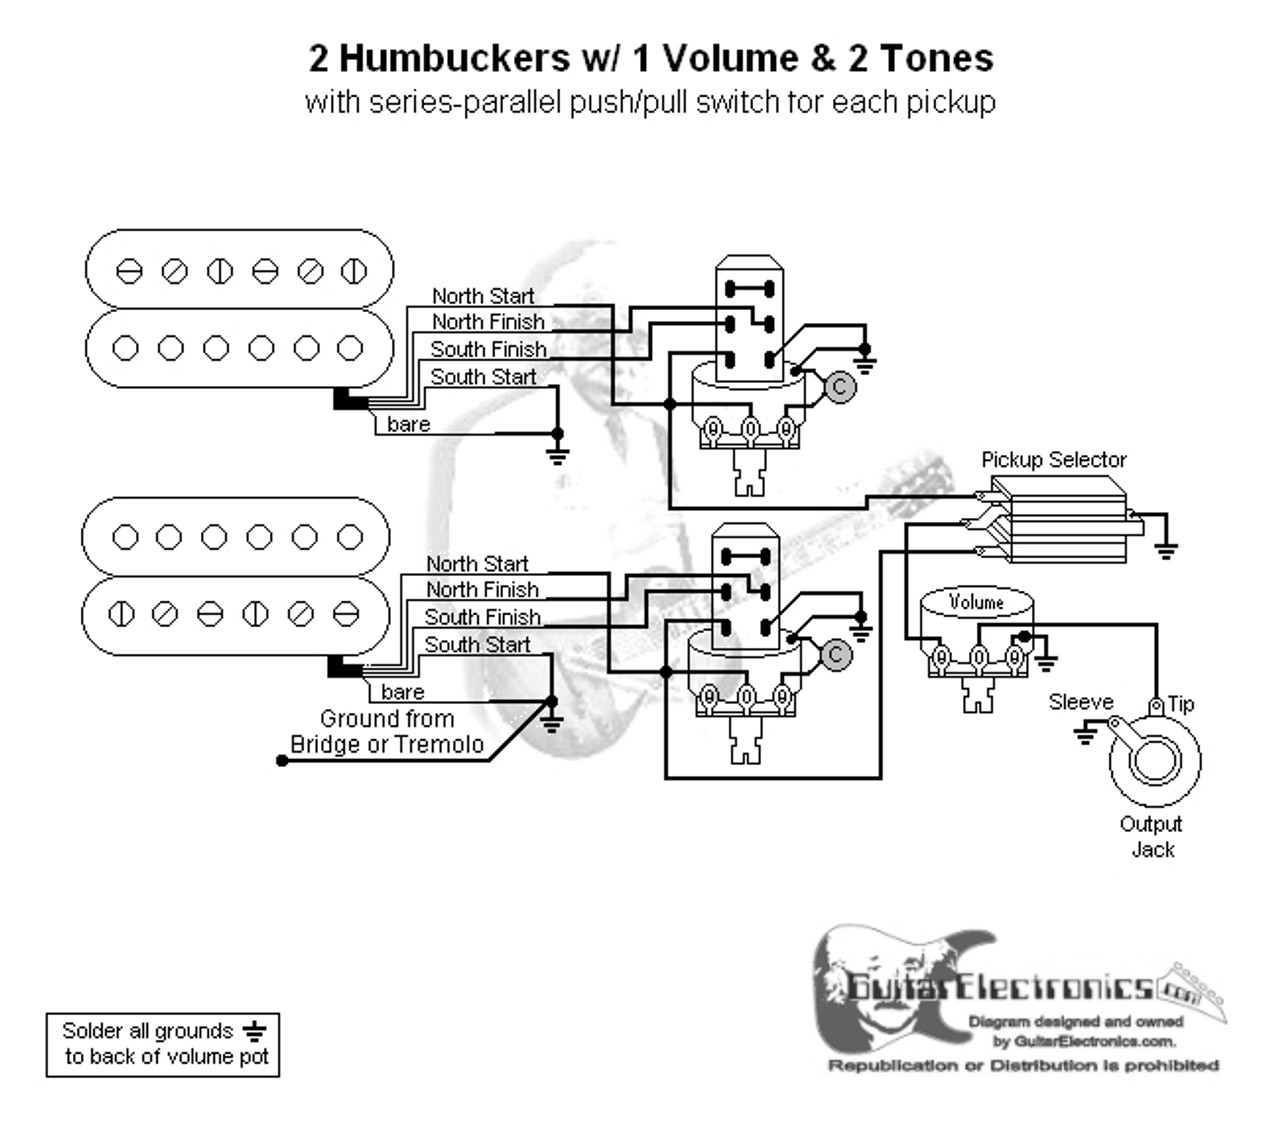 2 Humbuckers  3 1 Volume  2 Tones  Series Parallel